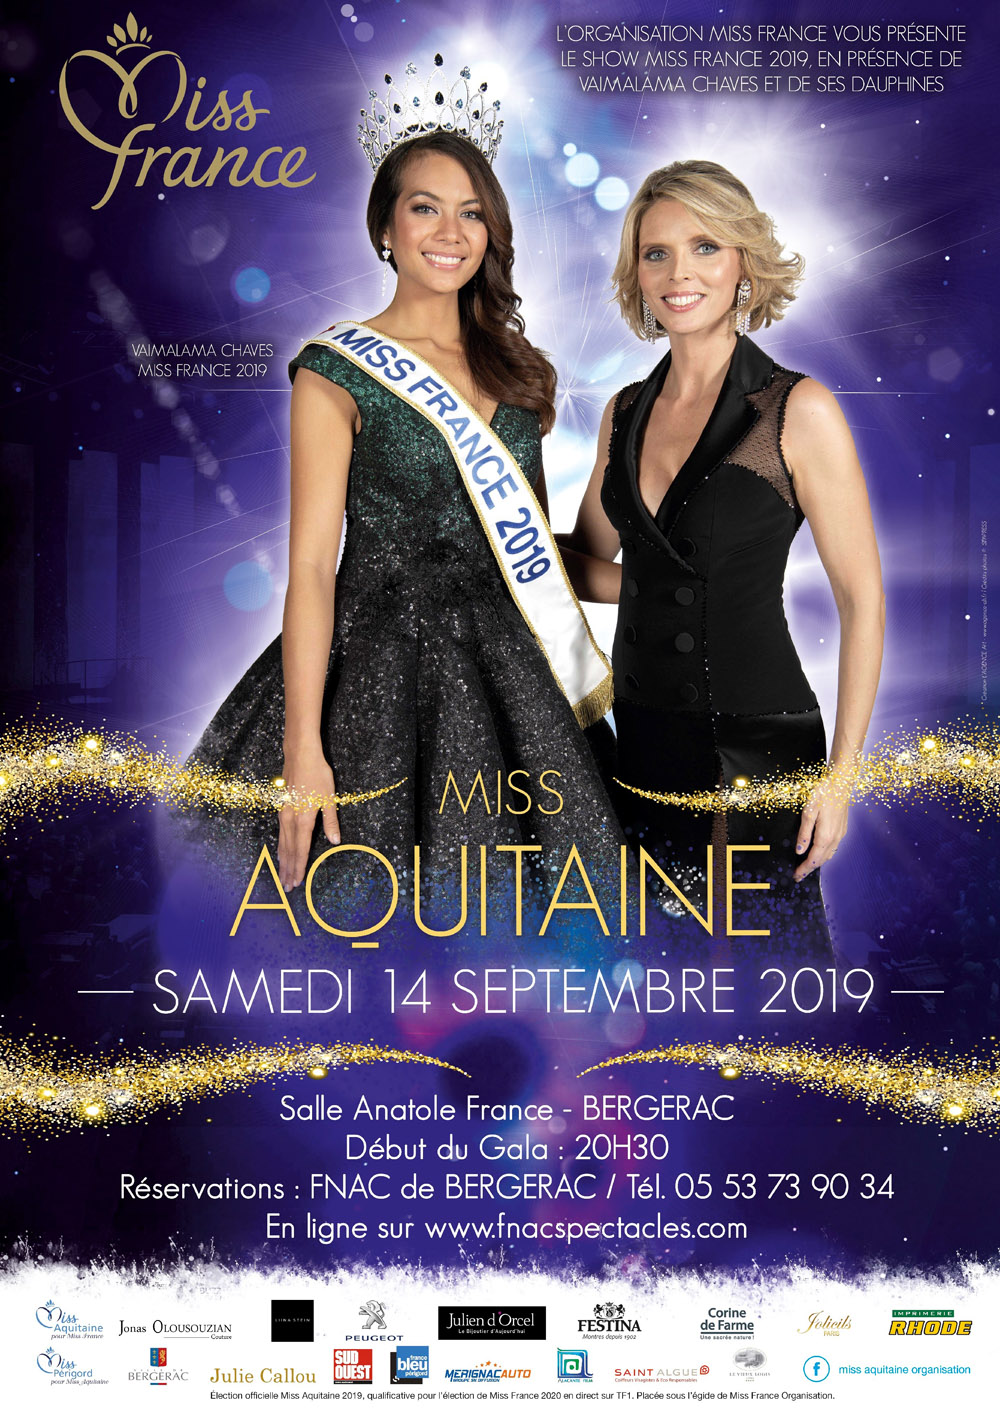 Miss France Aquitaine 2019